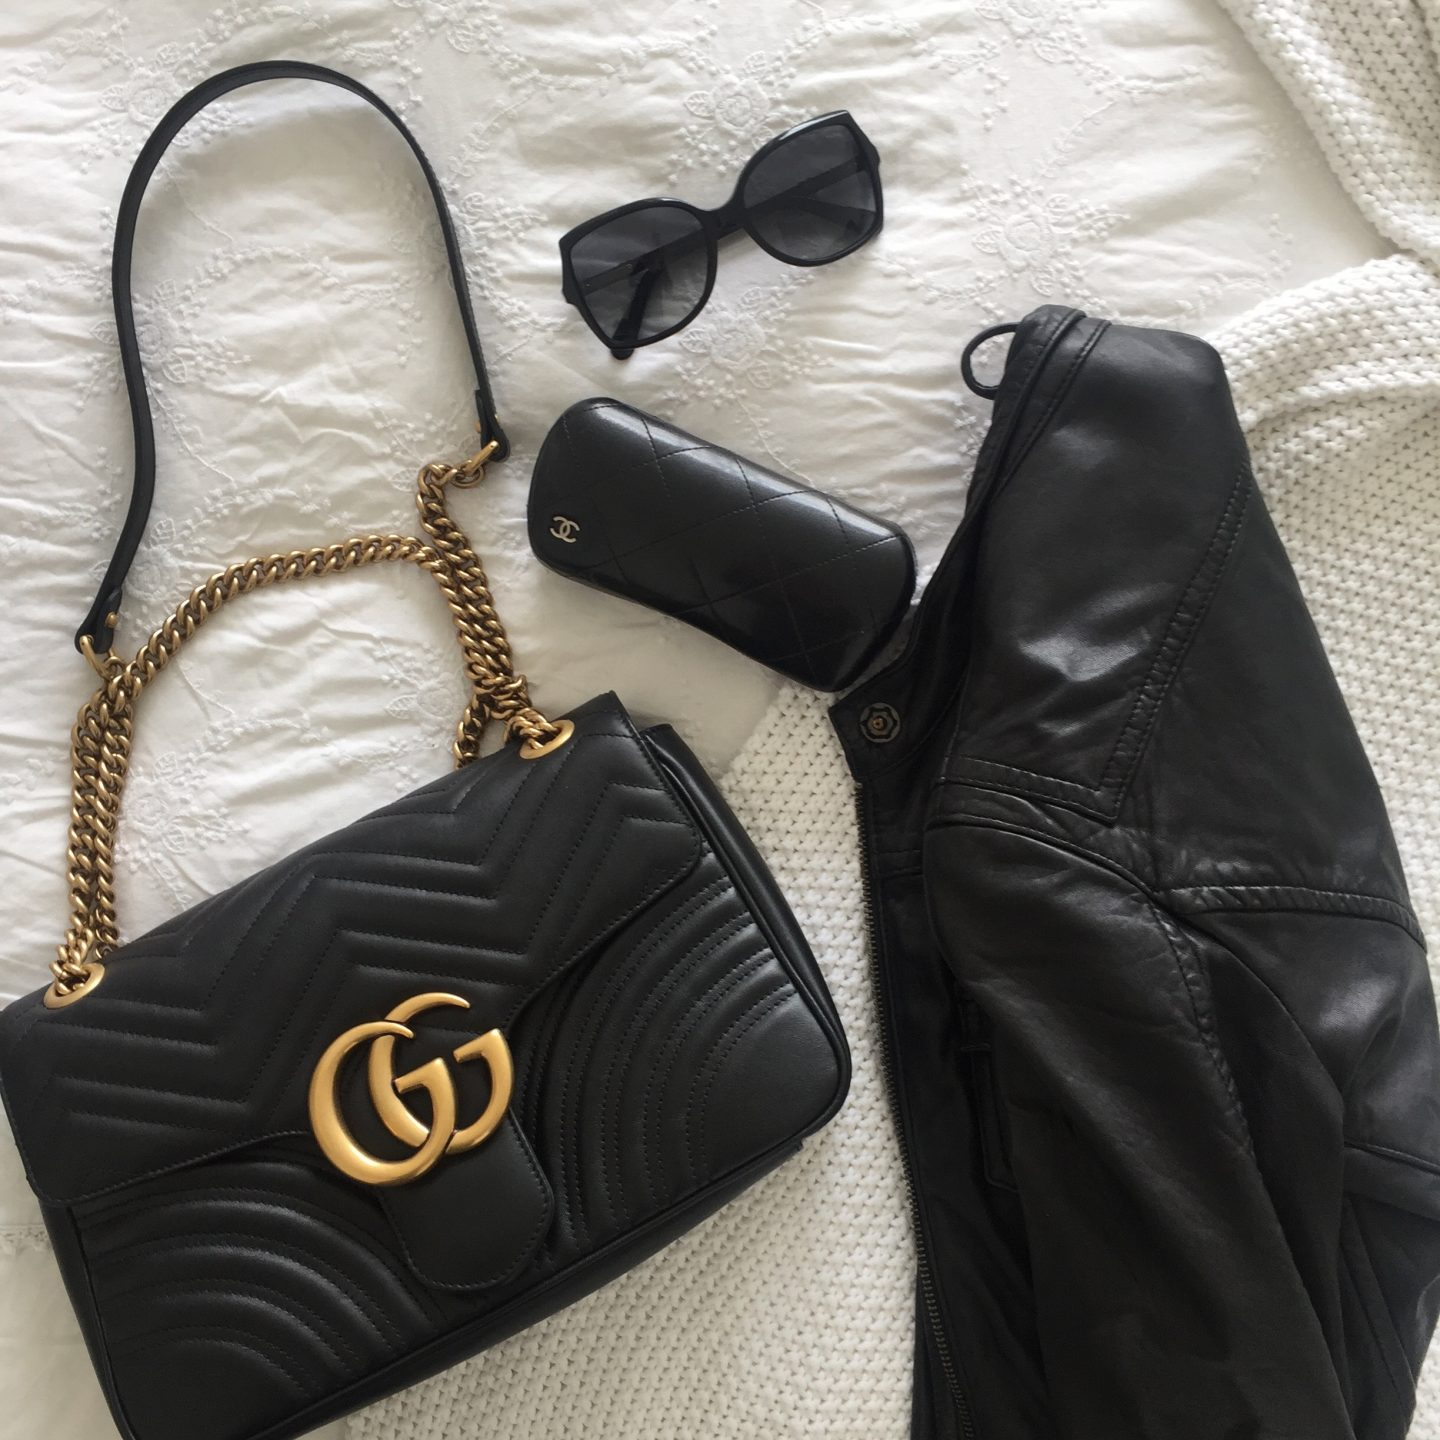 Gucci Marmont Medium Handbag and black accessories